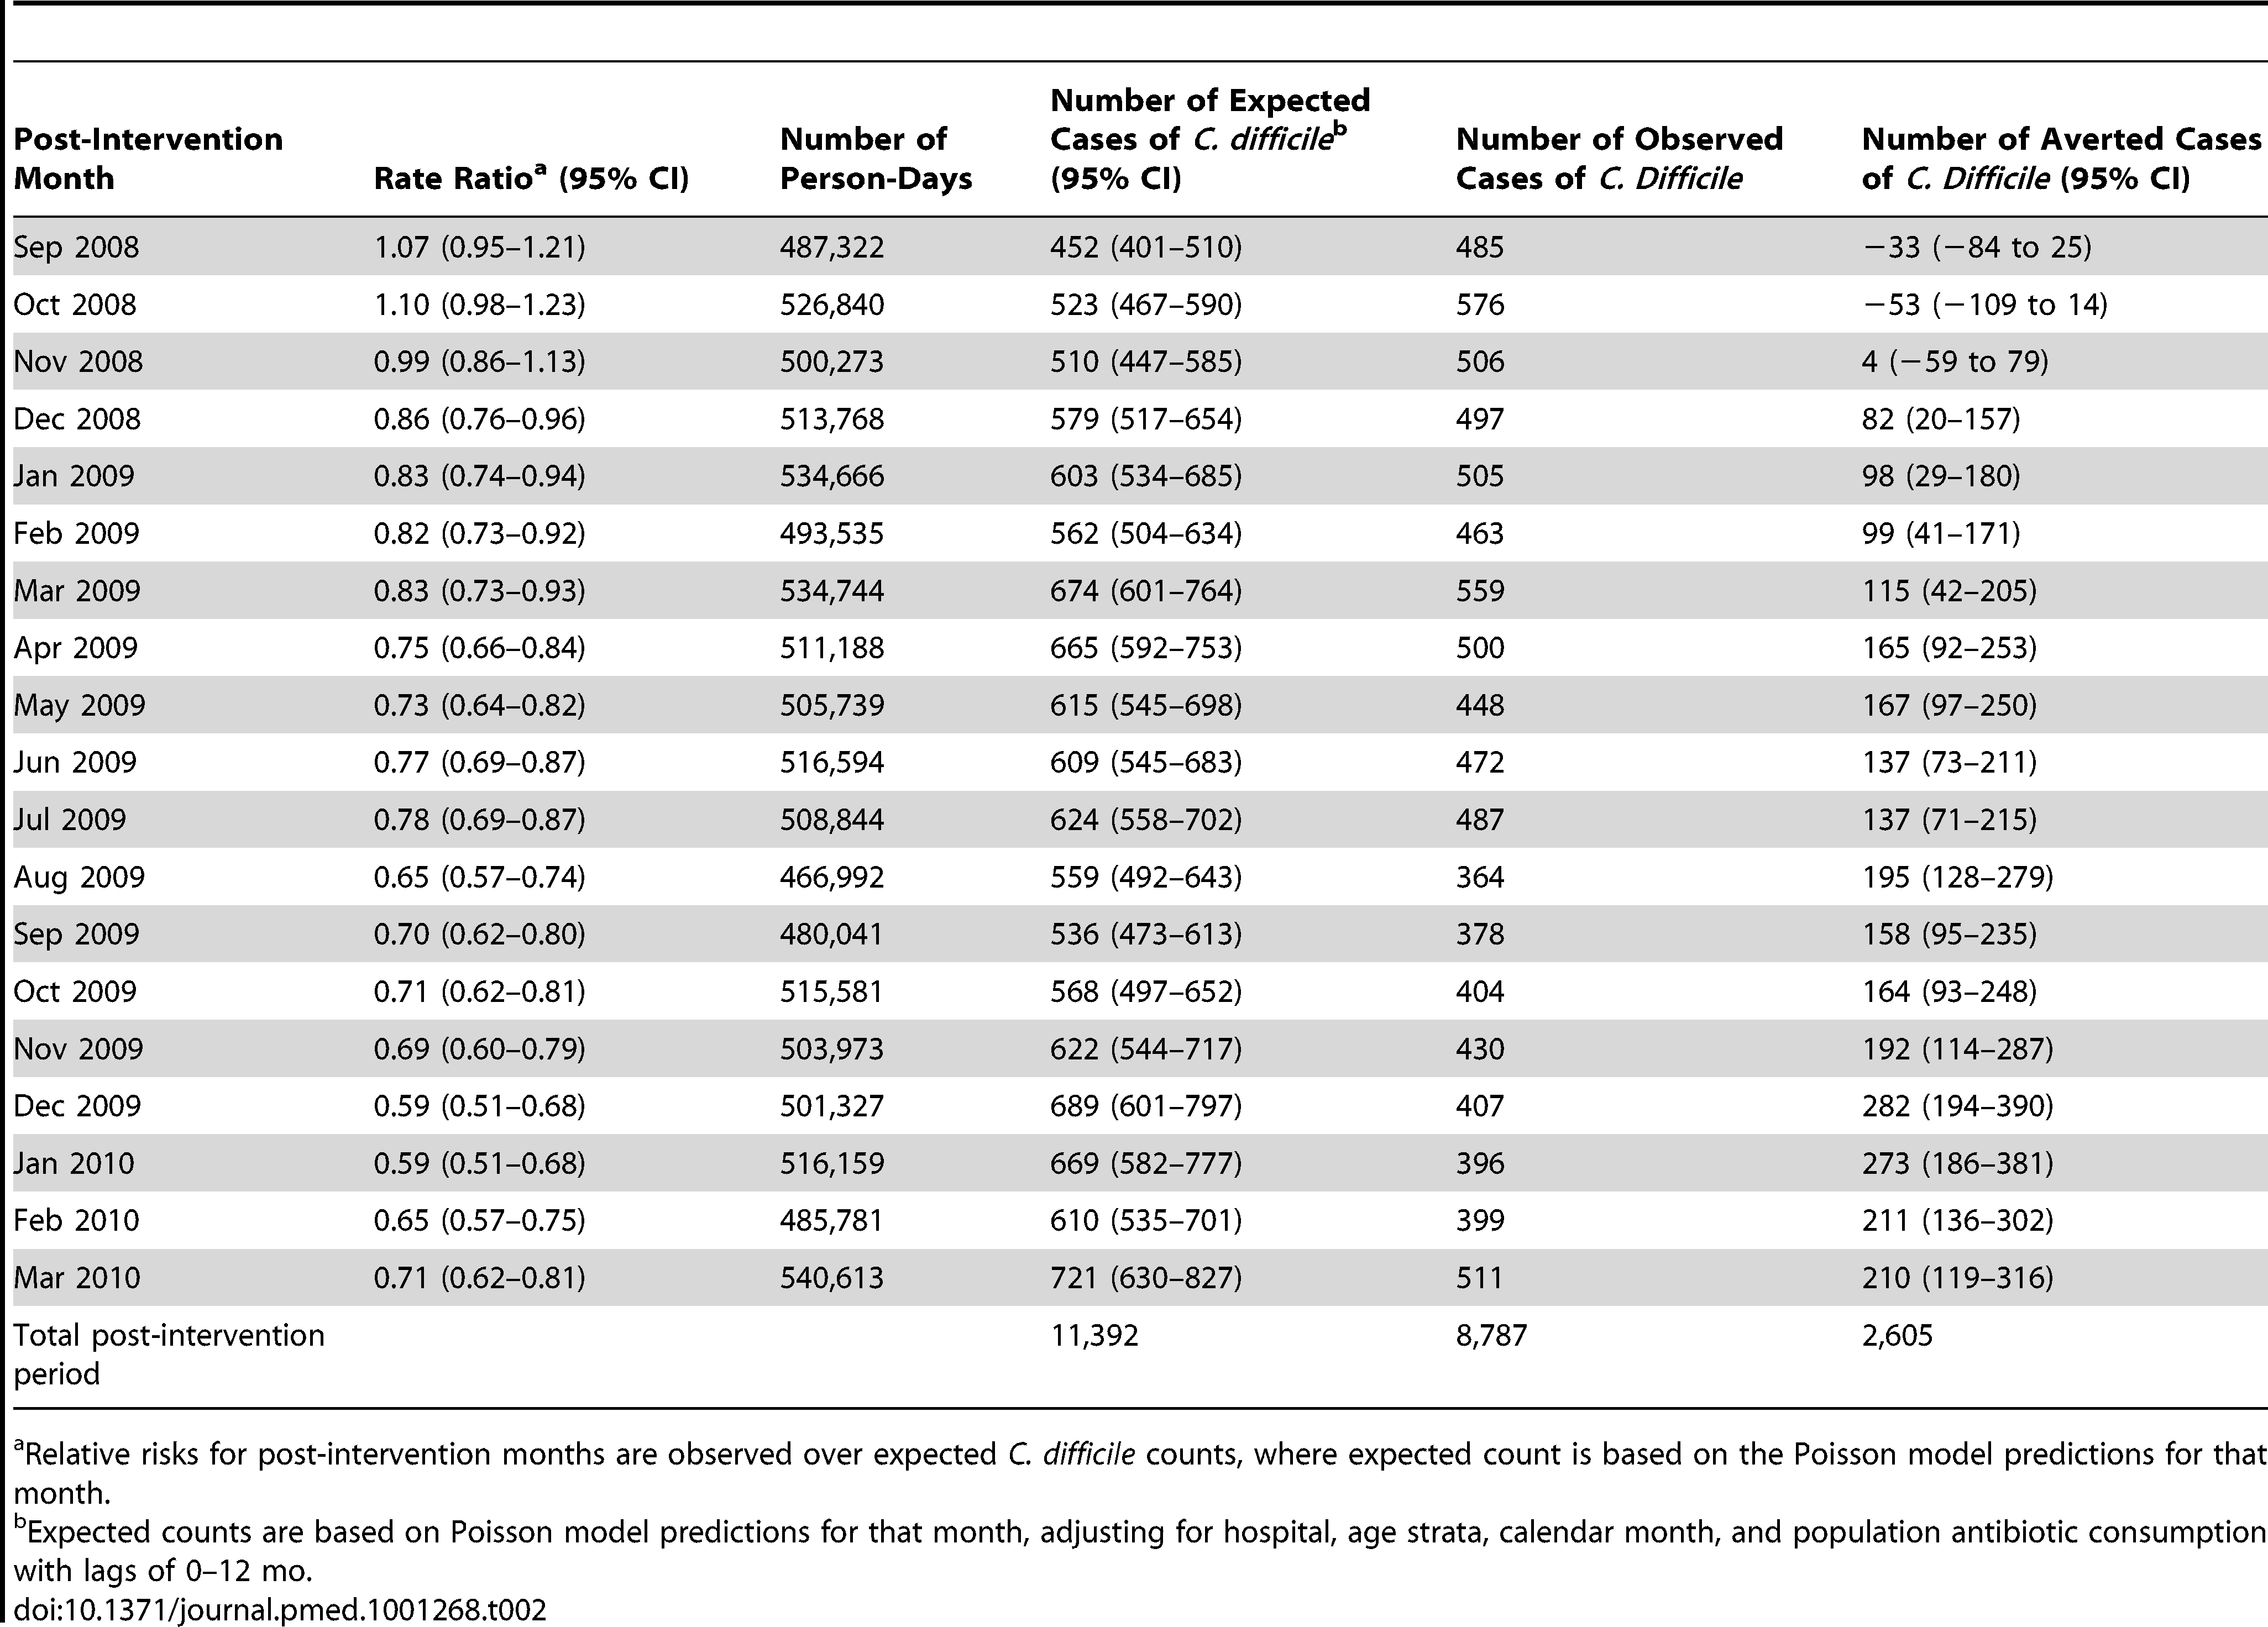 Cases of <i>C. difficile</i> averted by public reporting based on differences in observed and expected monthly case counts.